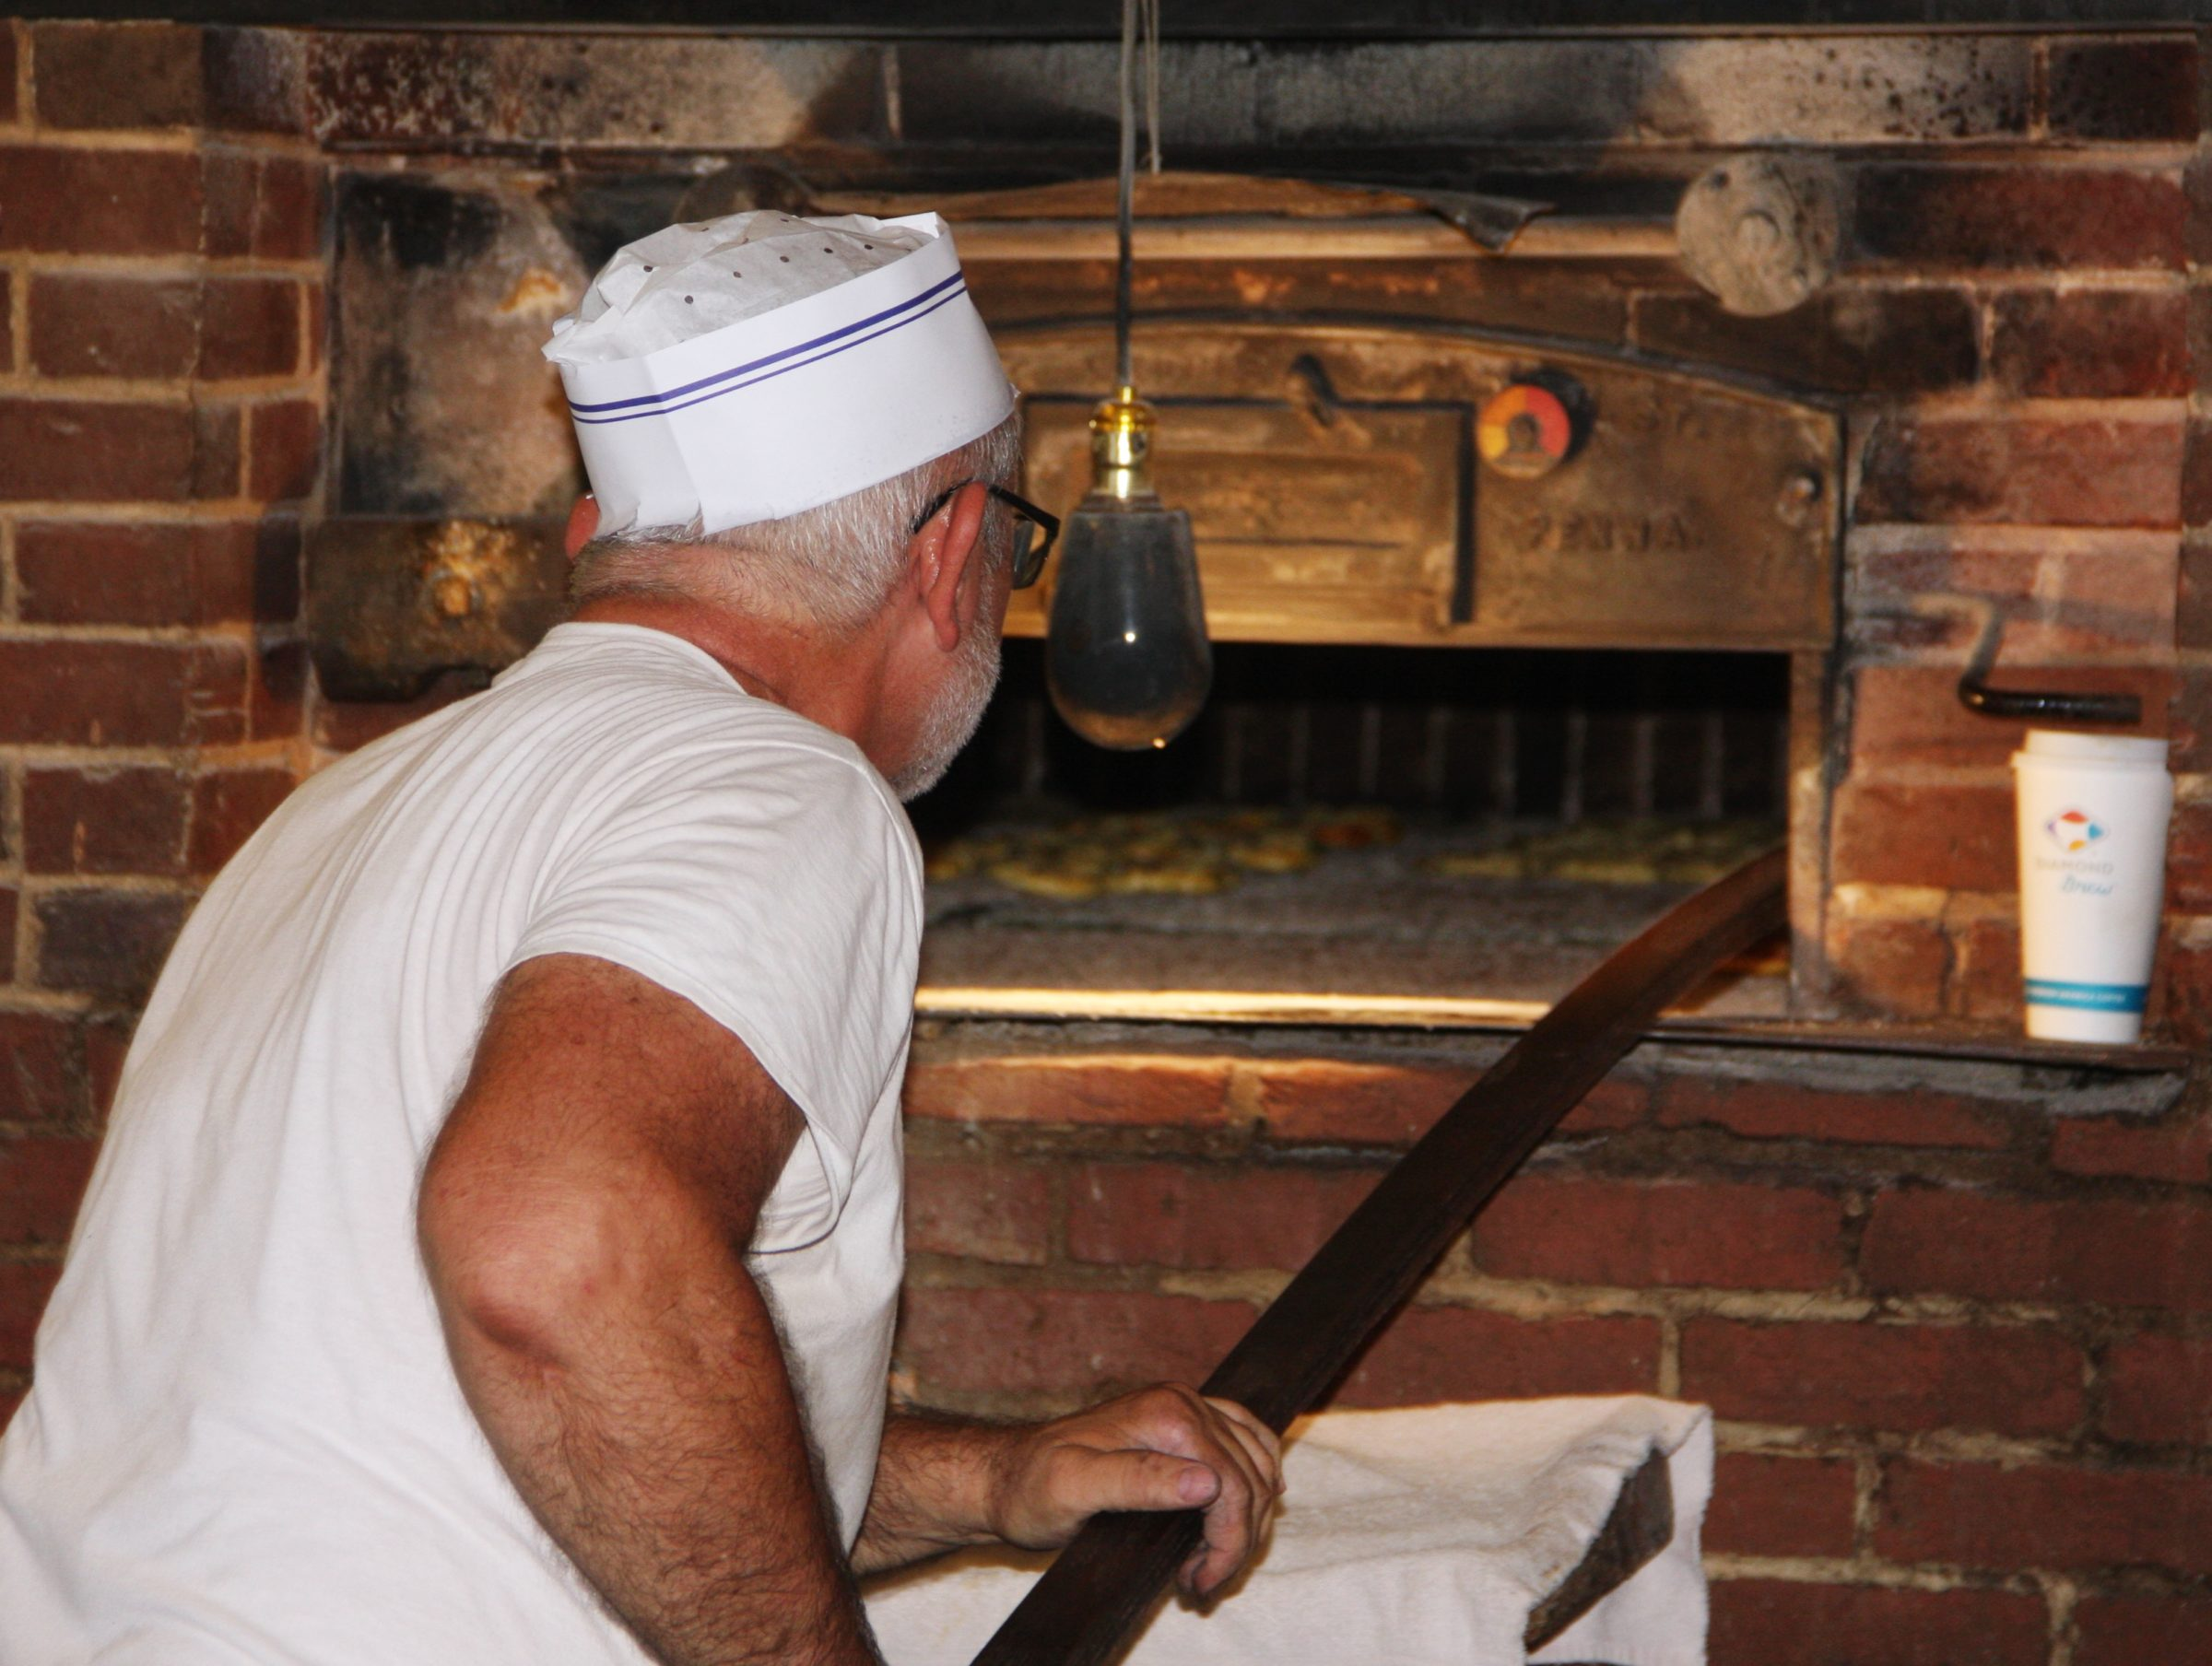 Family, craft, and tradition all twisted into Shuey's pretzel business